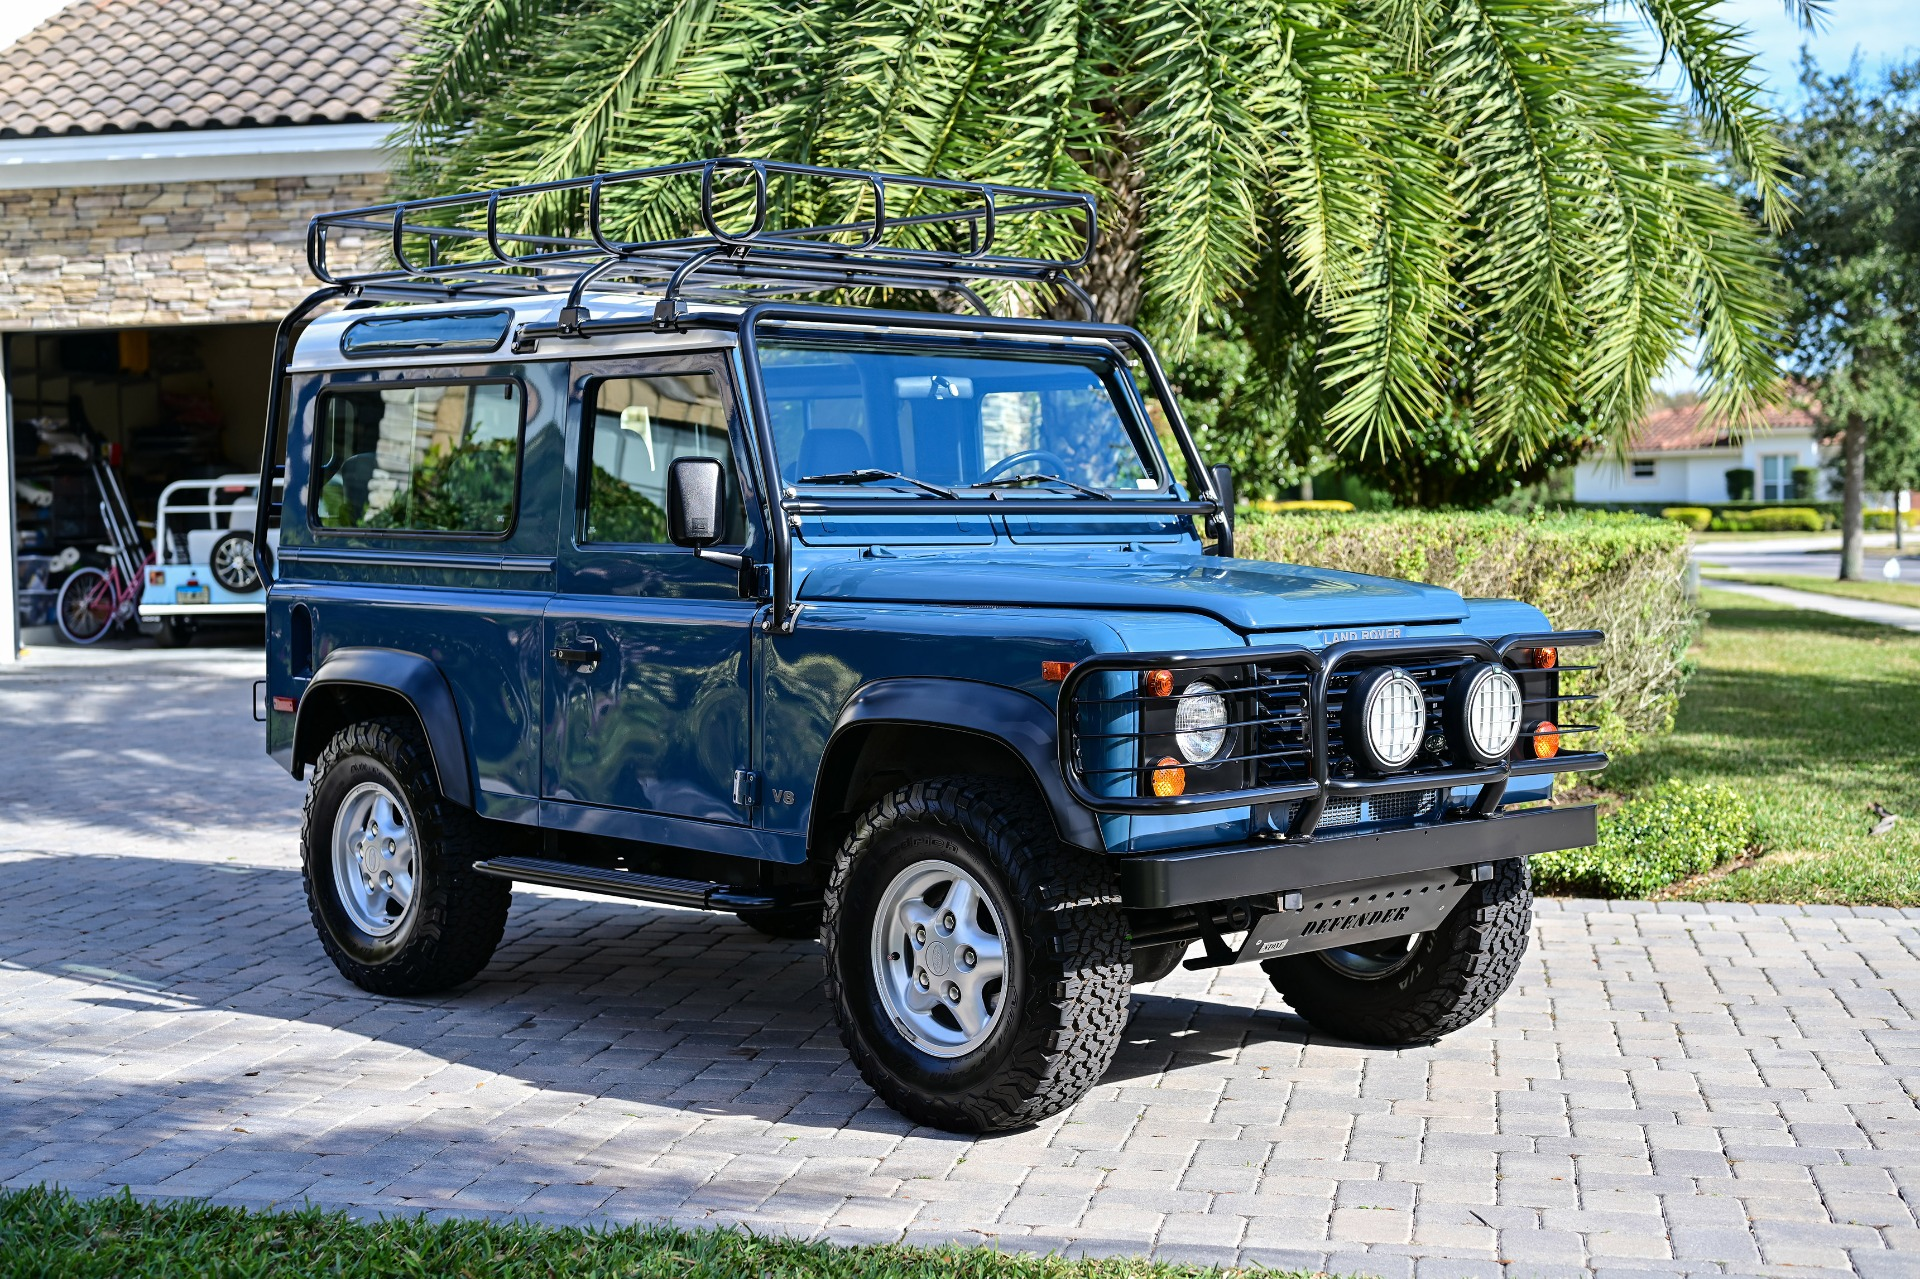 Used 1997 Land Rover Defender 90 Hard Top Sport Utility 2D for sale Sold at Track and Field Motors in Safety Harbor FL 34695 1